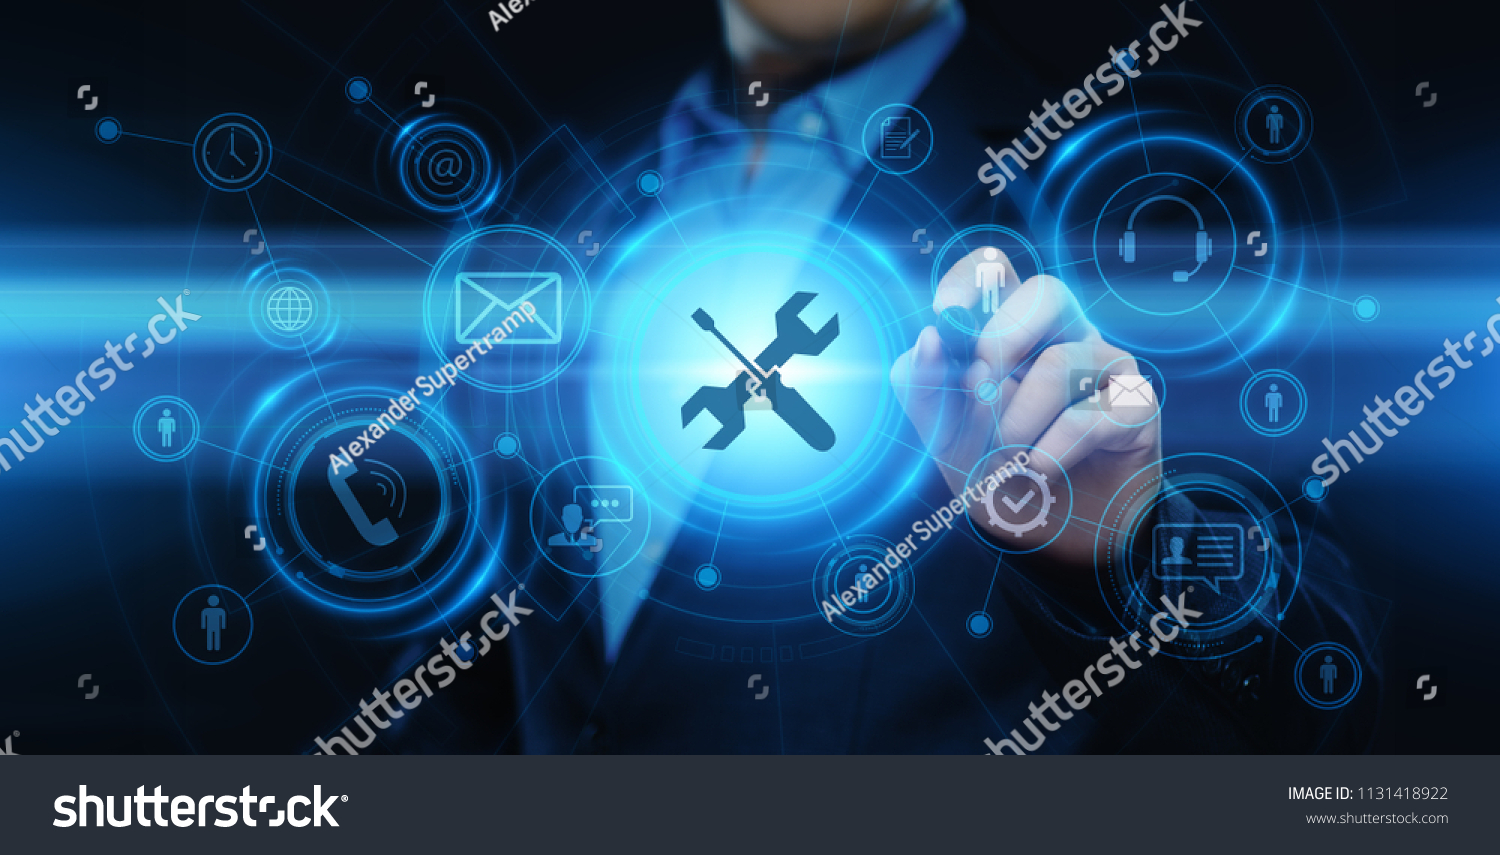 Technical Support Customer Service Business Technology Internet Concept. #1131418922